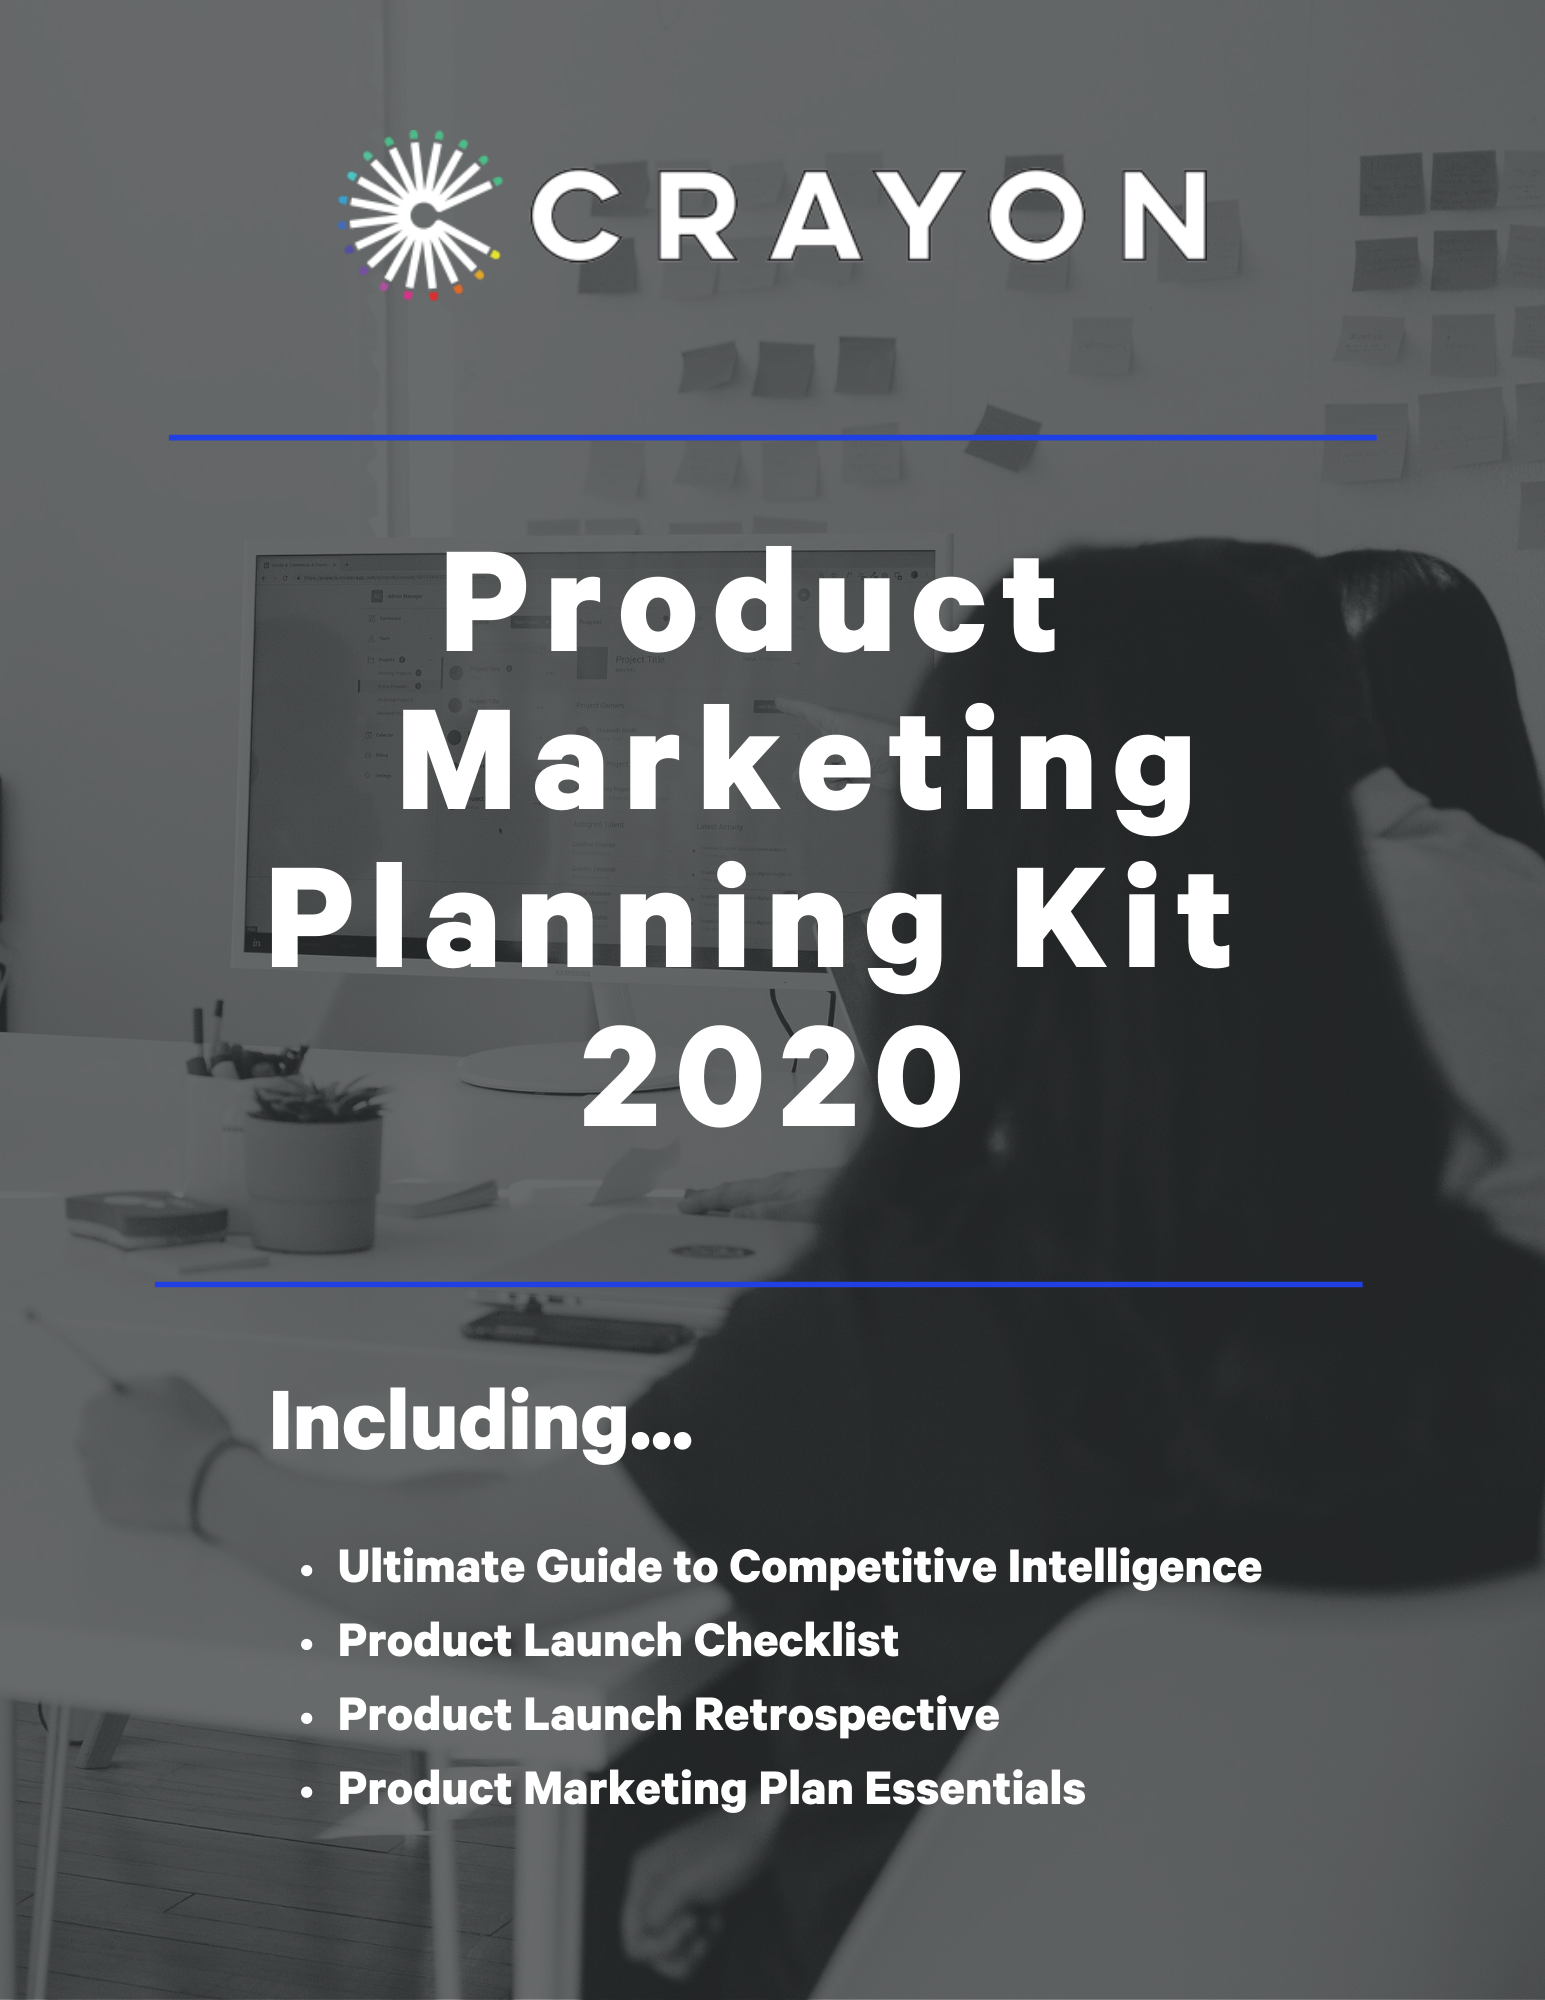 Product Marketing Planning Kit 2020